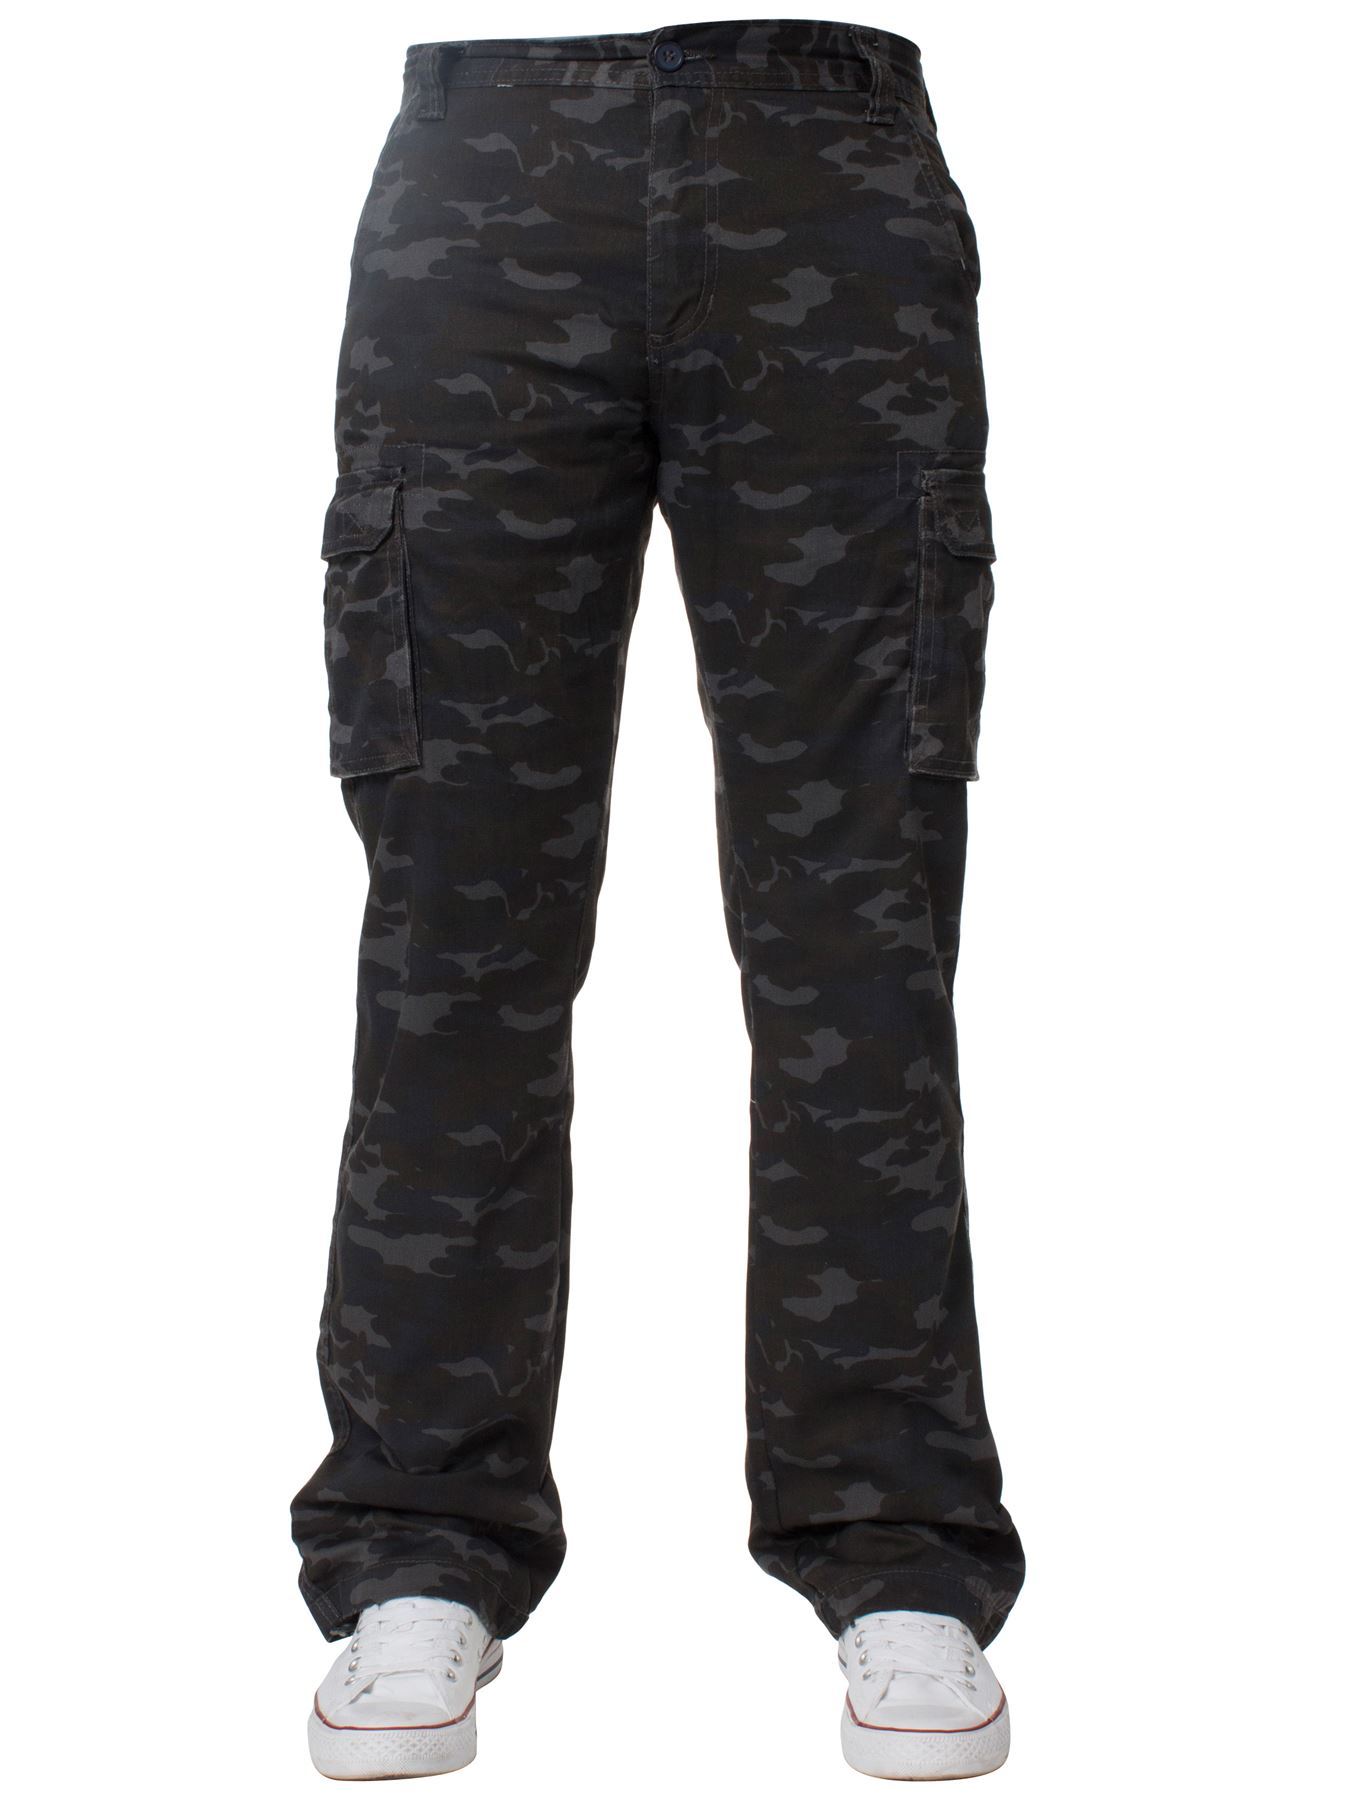 Kruze-Mens-Military-Combat-Trousers-Camouflage-Cargo-Camo-Army-Casual-Work-Pants thumbnail 34